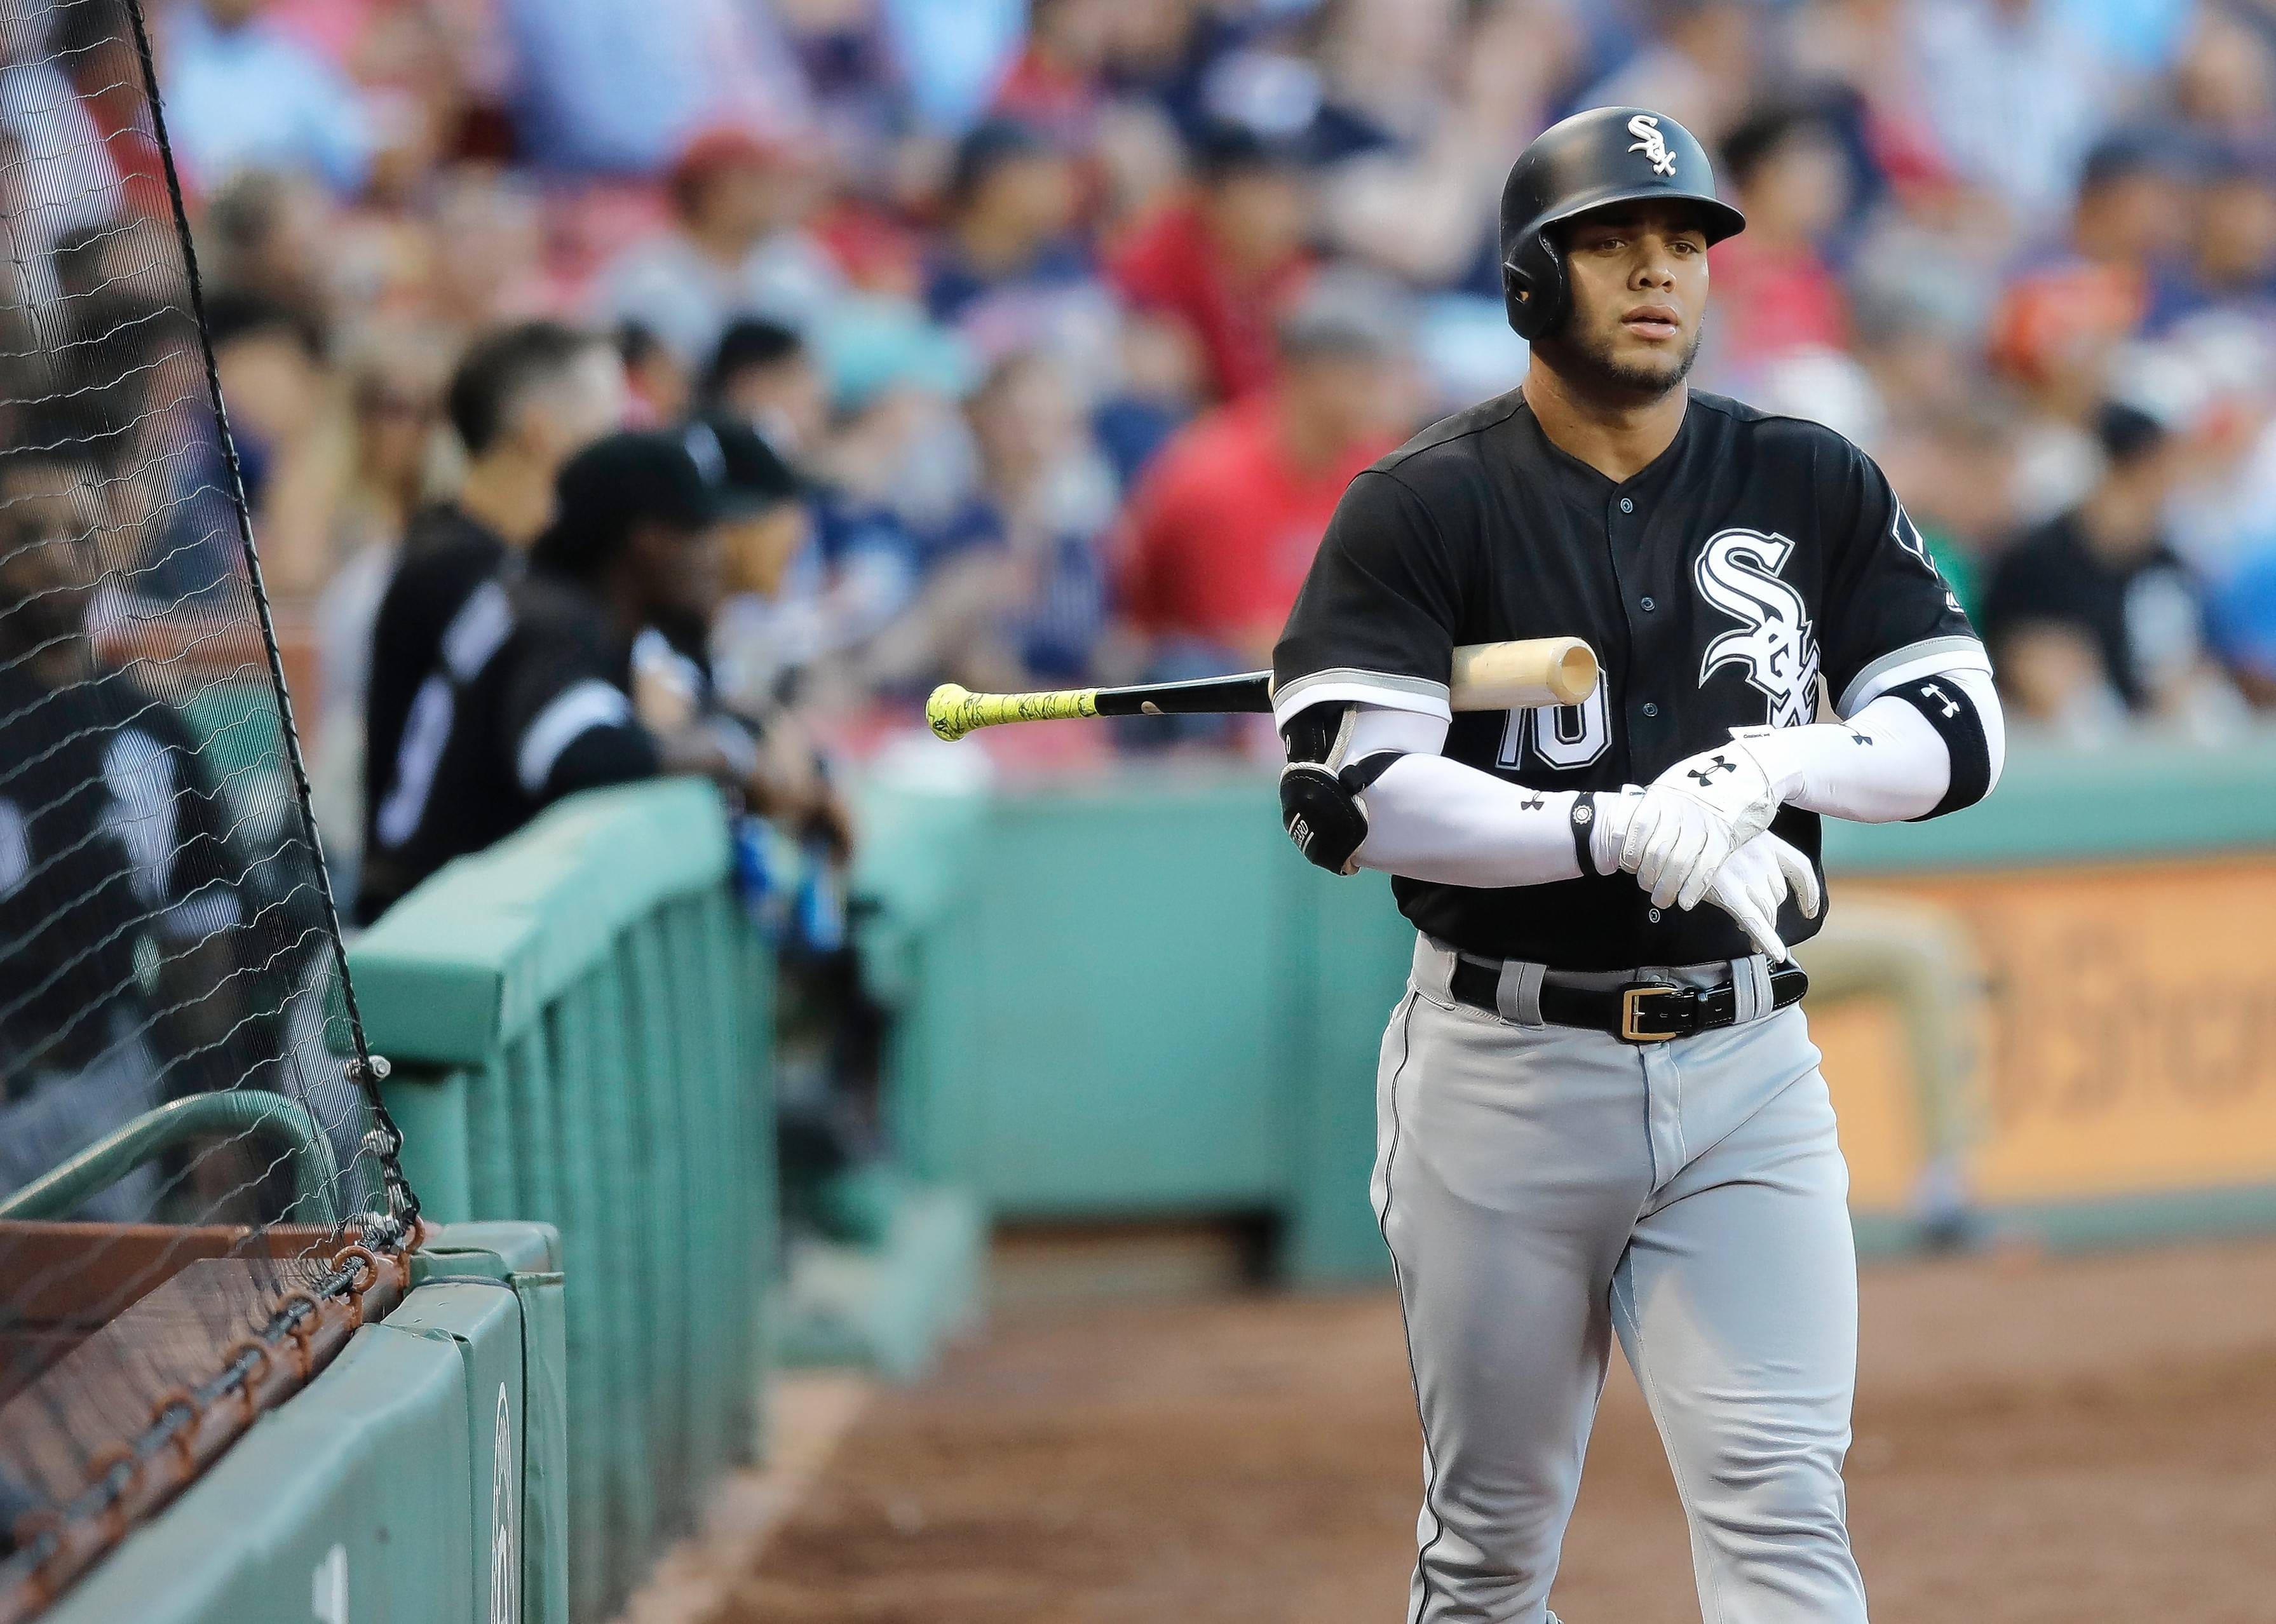 Yoan Moncada is just one of the many prospects the White Sox got by trading away 12 of their veteran players since last July.